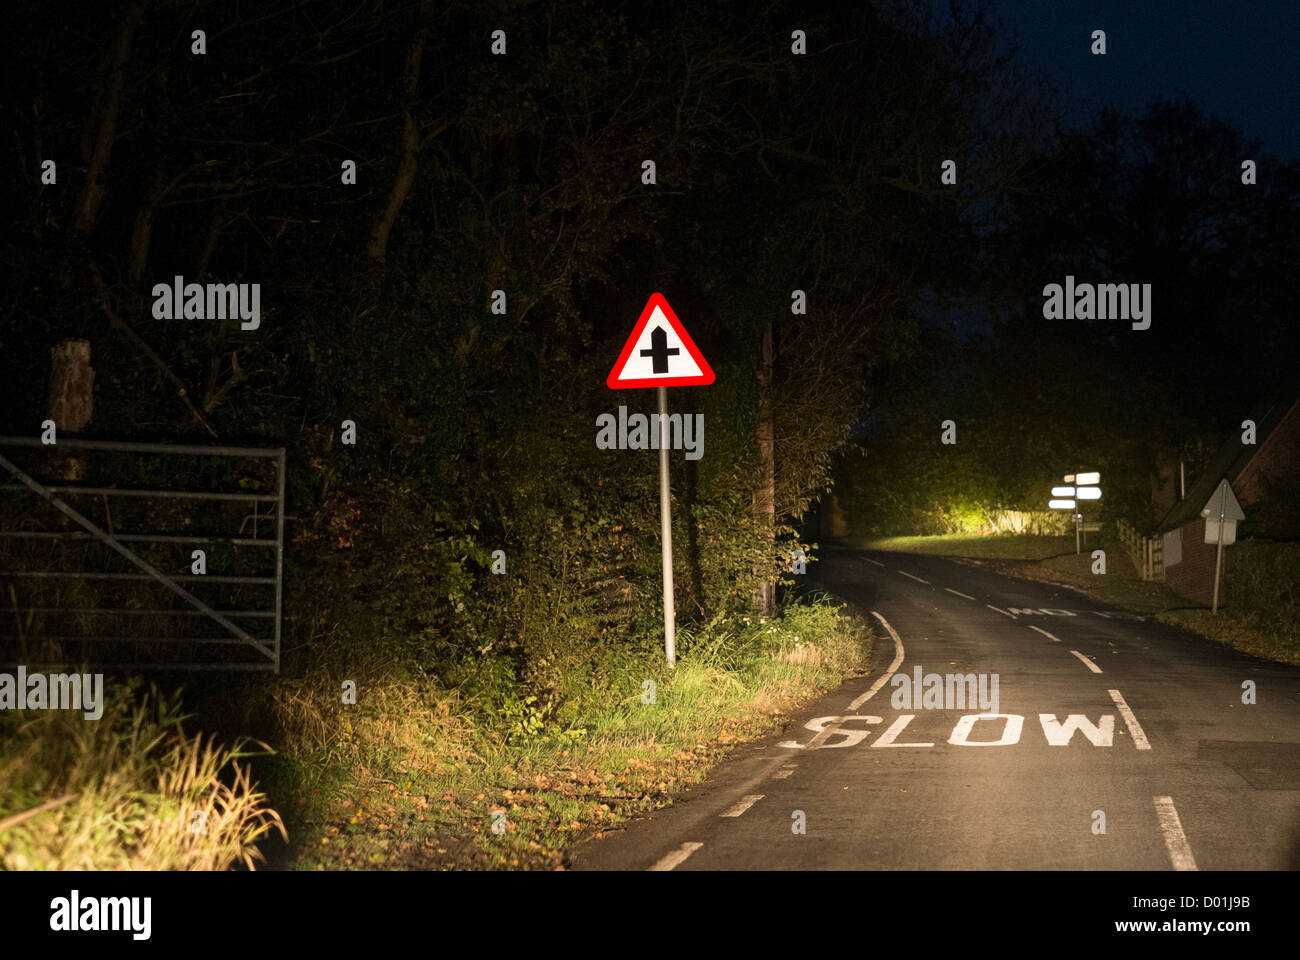 At a crossroads. Driving at night along country lanes negotiating crossroads in Worcestershire, UK. - Stock Image